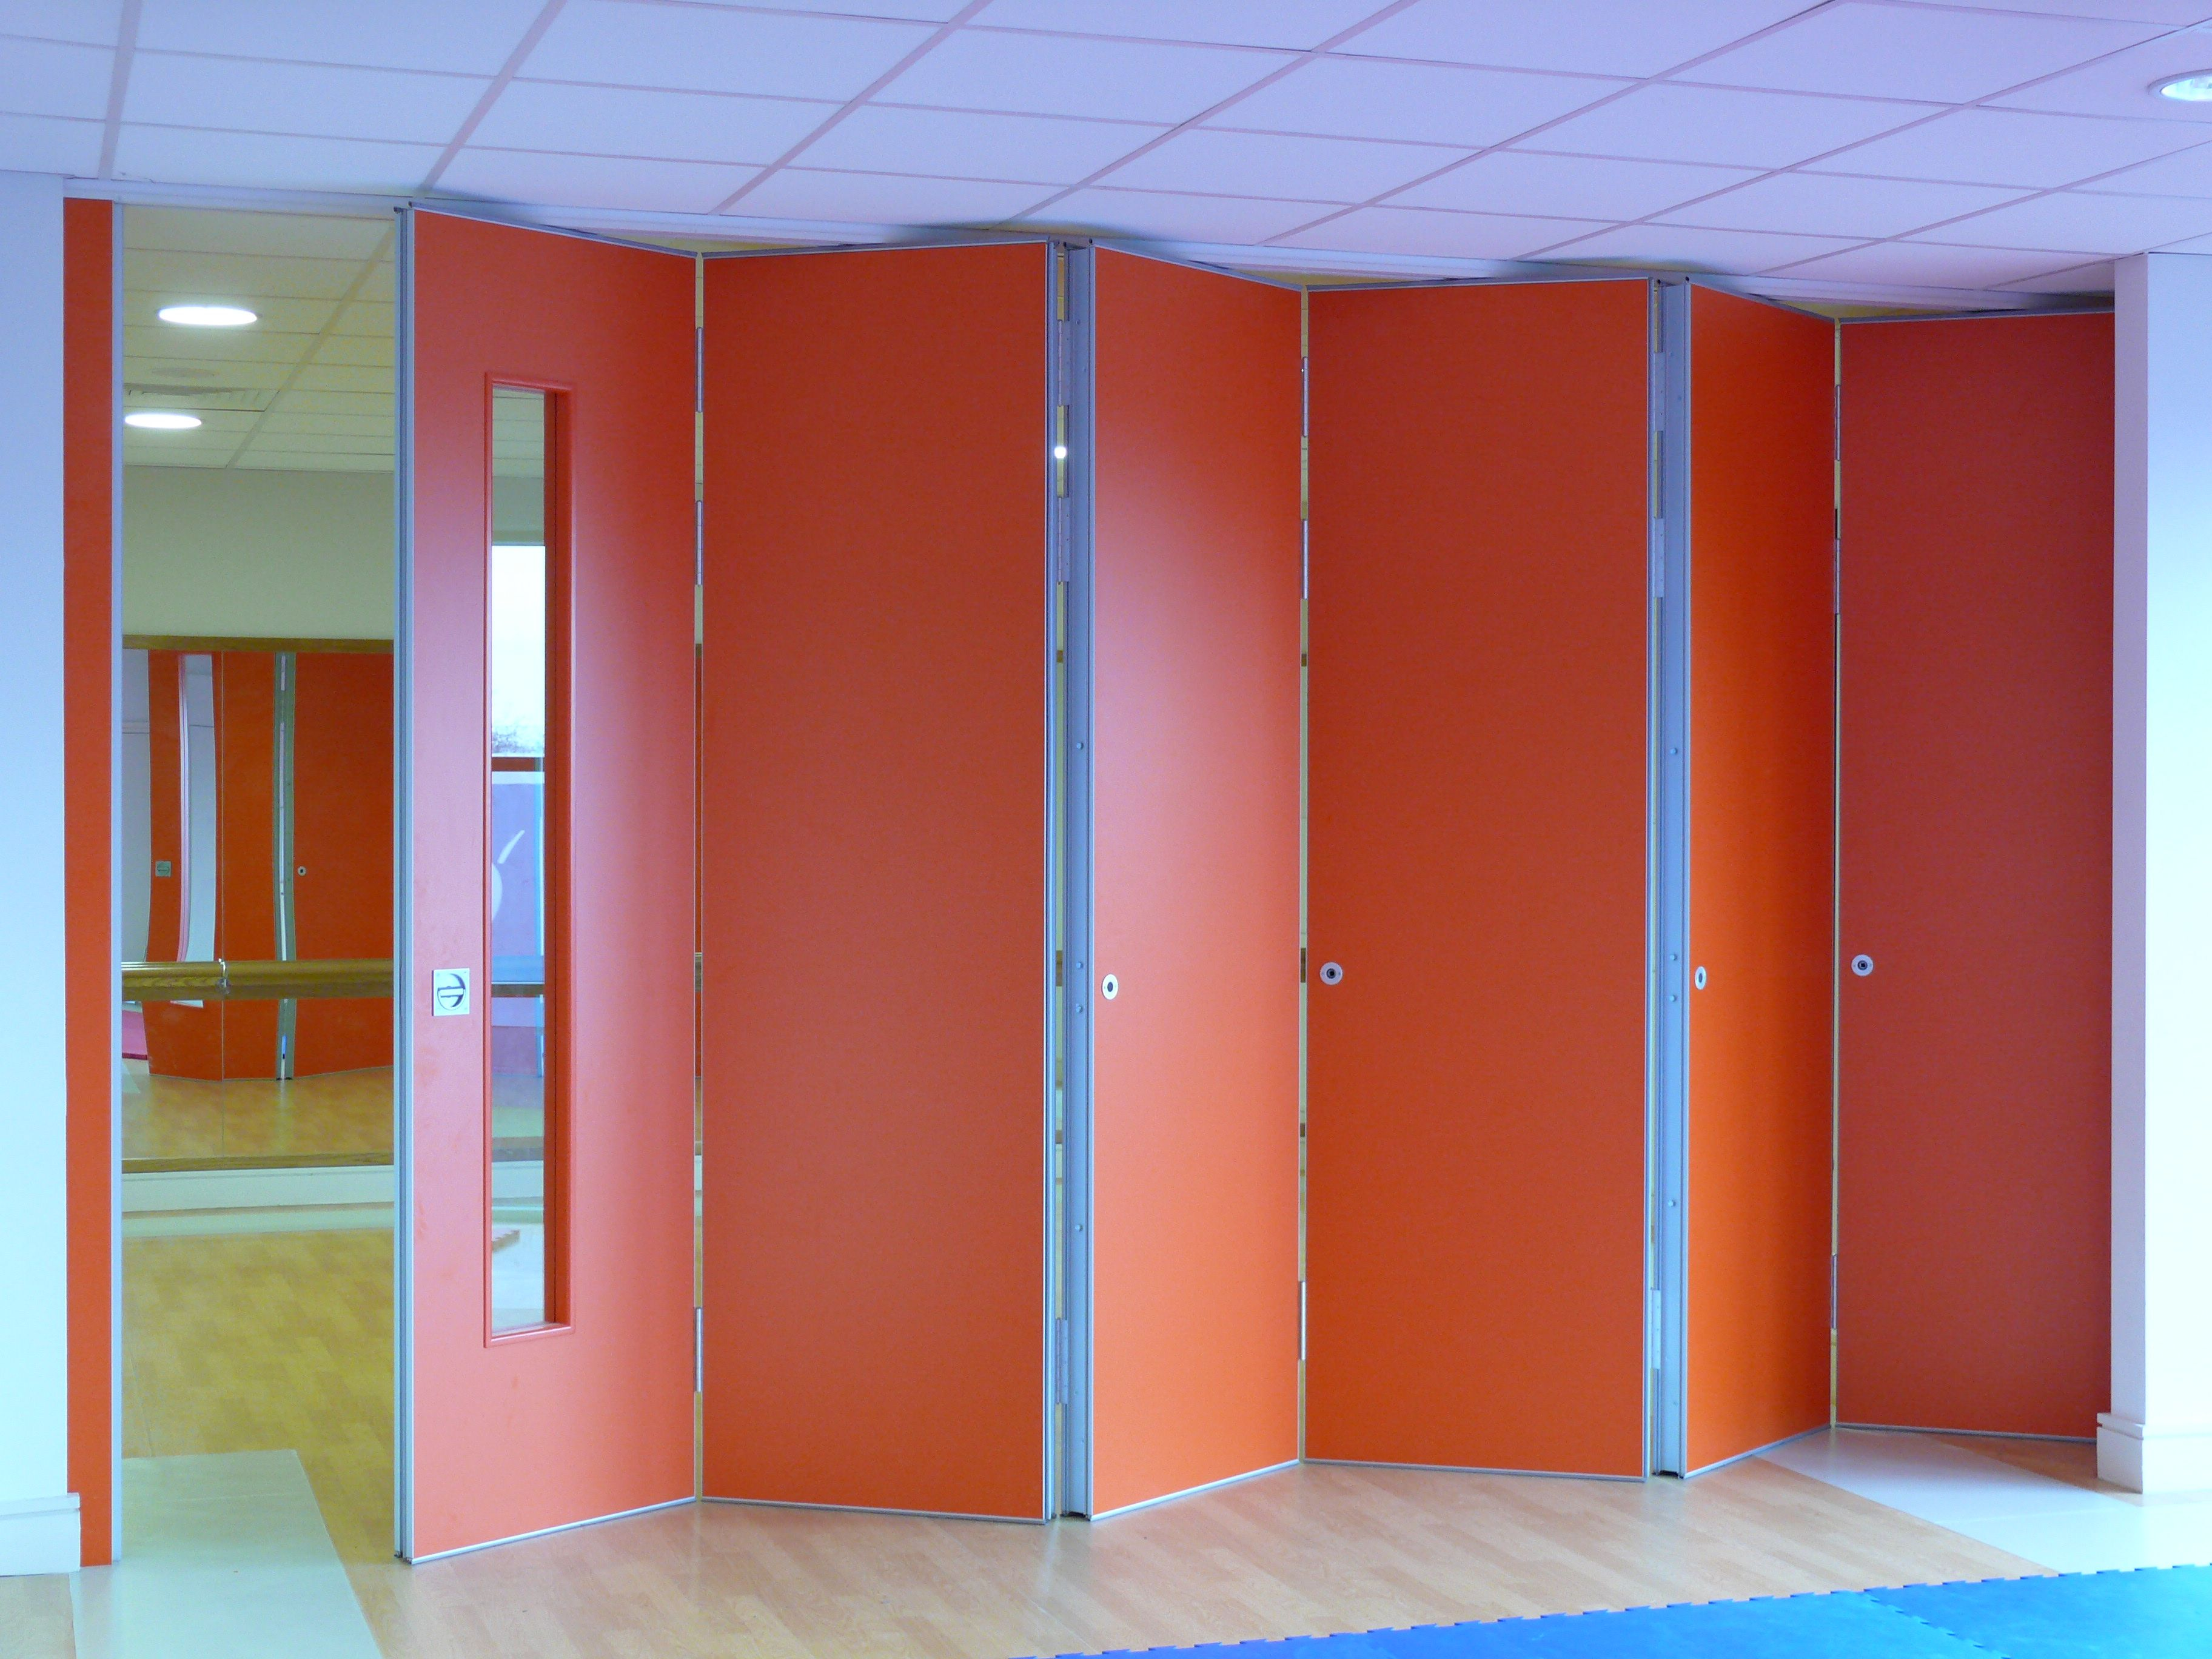 Uncategorized Bi Fold Partition Walls pin by todd jannausch on class supplies pinterest spacelink offer a wide range of solid and glazed moveable wall systems with varying degrees sound attenuation from depending constr